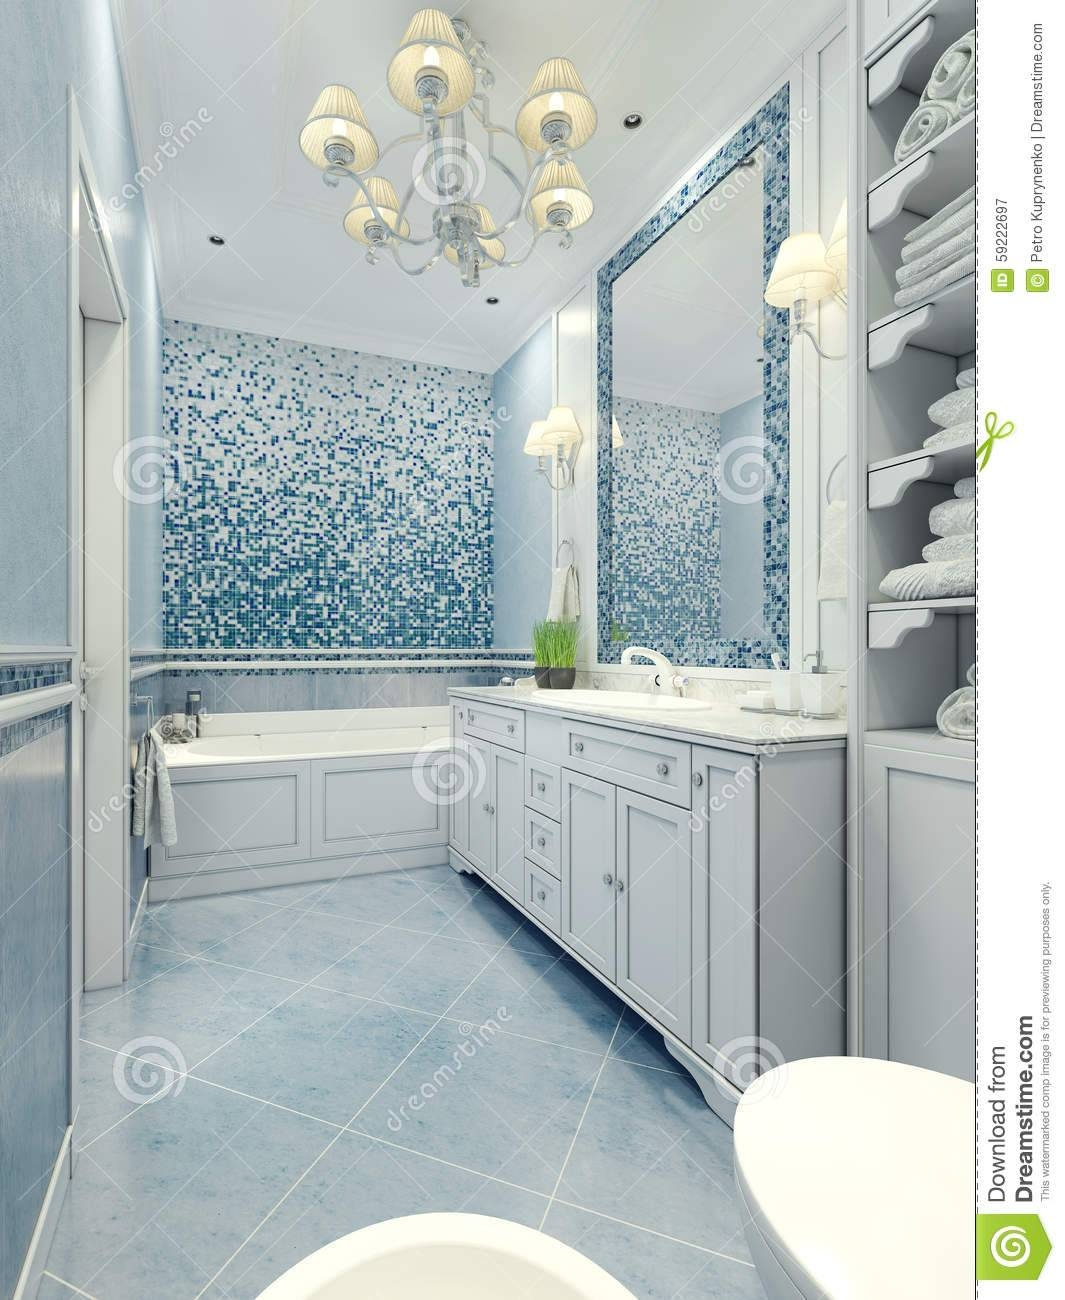 Bathroom Art Deco Style Stock Photo - Image: 59222697 with regard to Art Deco Style Bathroom Mirrors (Image 15 of 25)